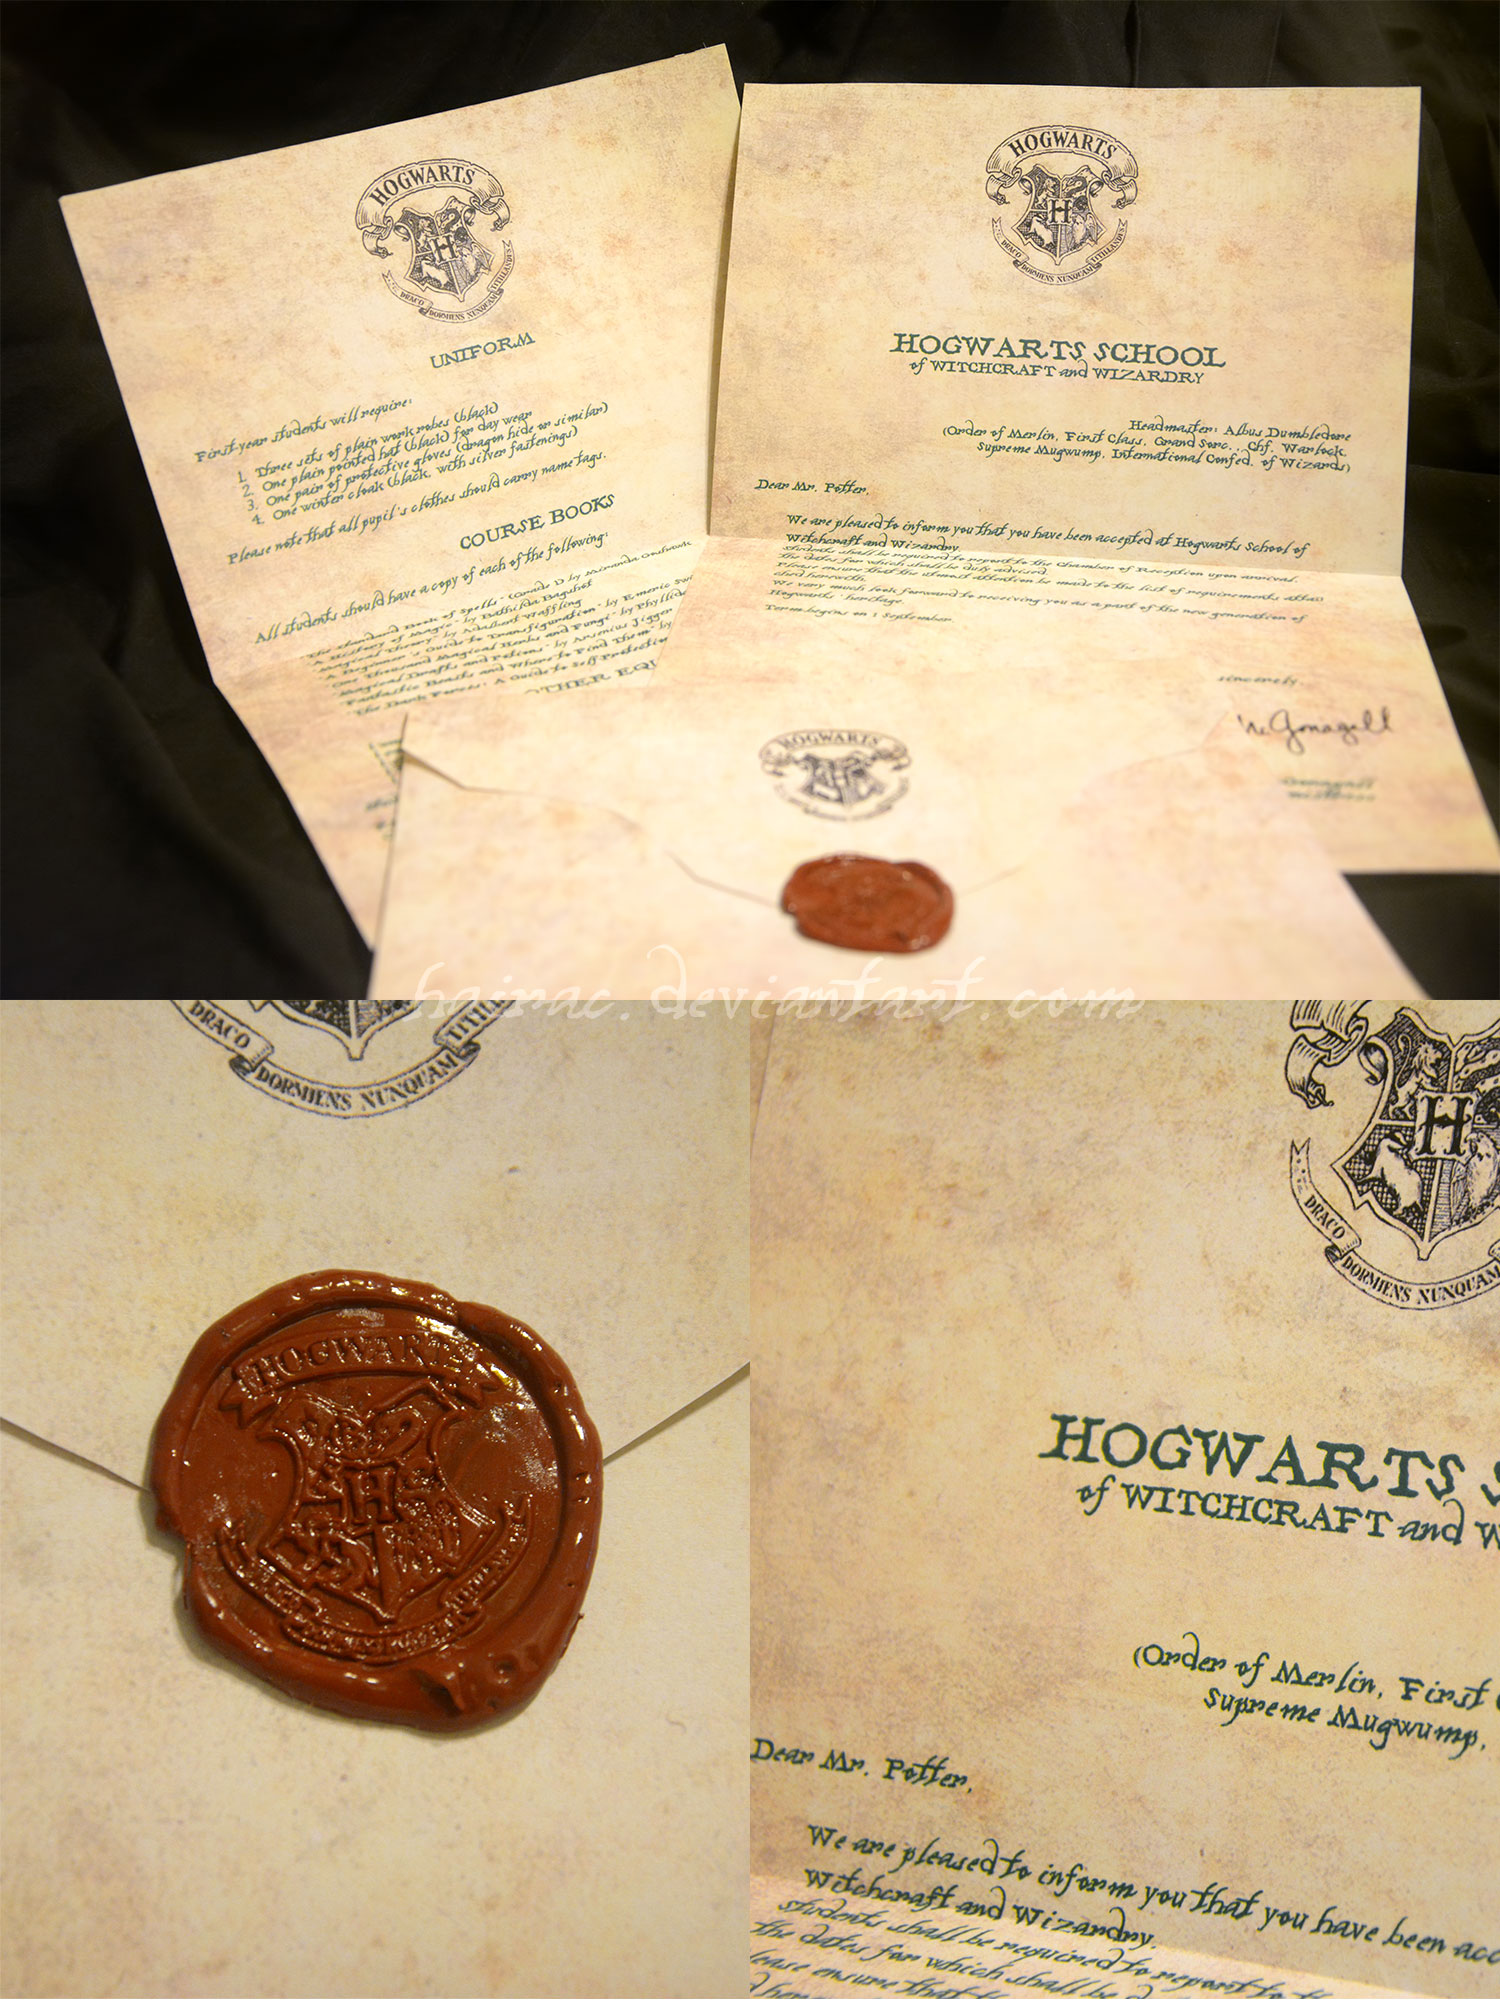 harry potter acceptance letter harry potter acceptance letter italian version by hairac 22092 | harry potter acceptance letter italian version by hairac d6m43a7